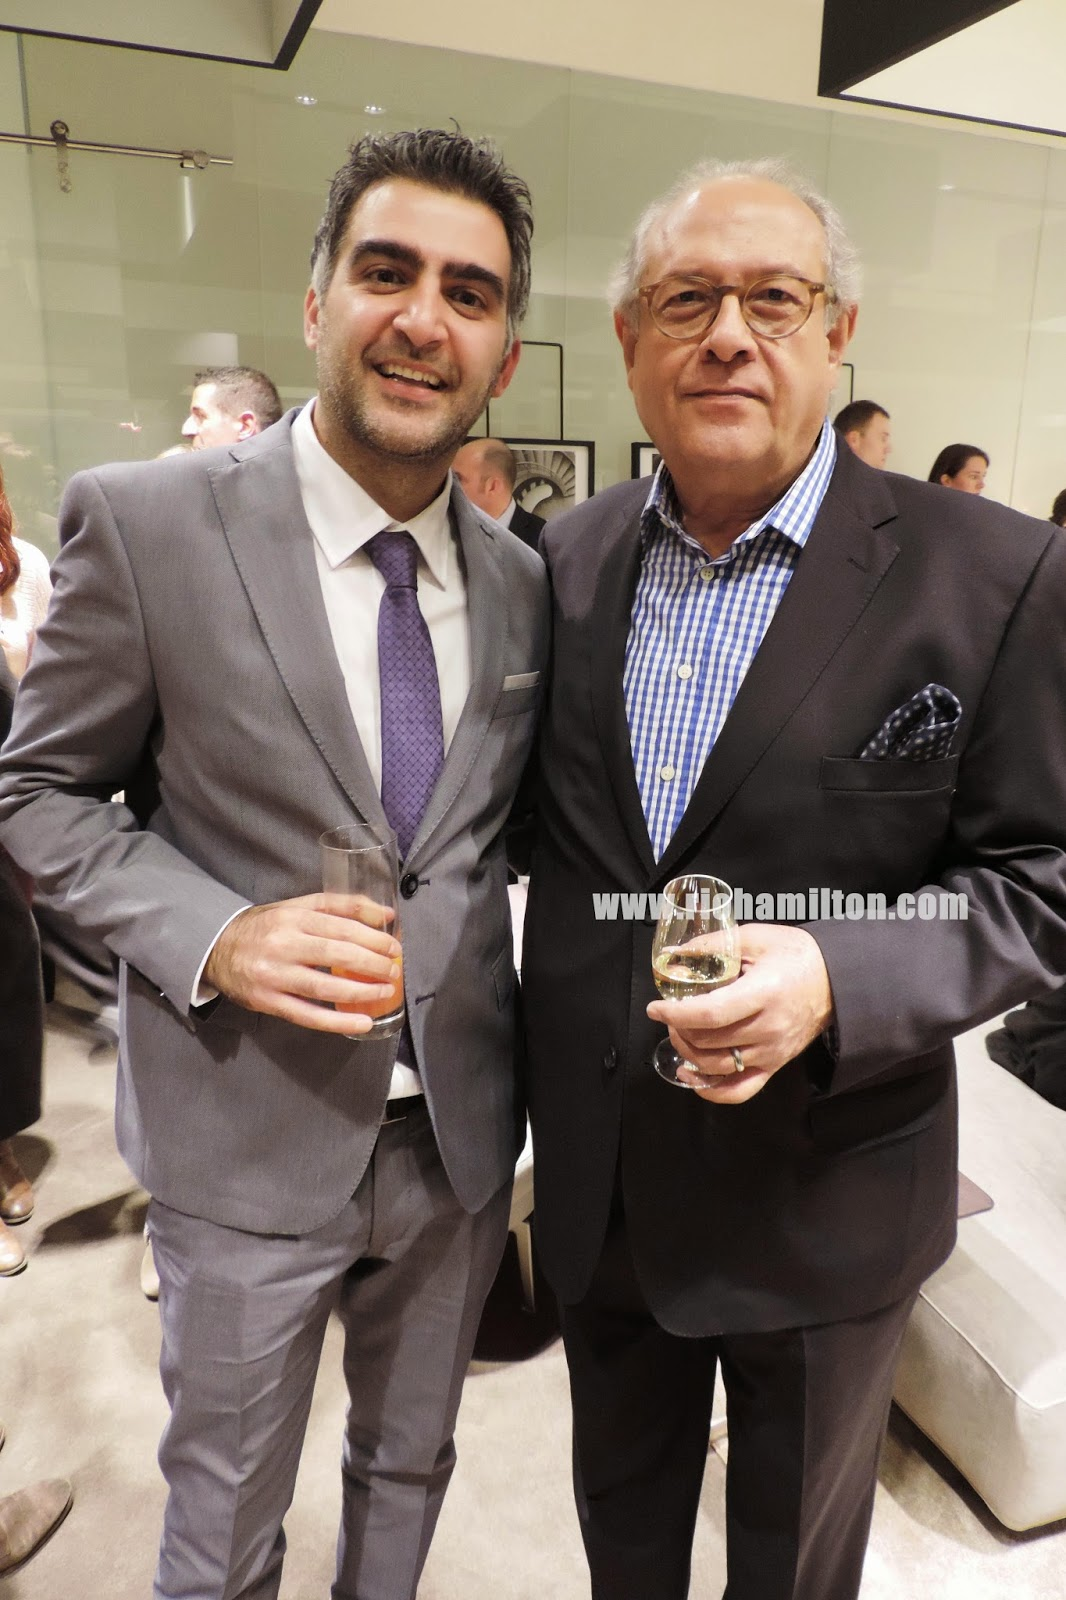 amir and flexform president jose levy